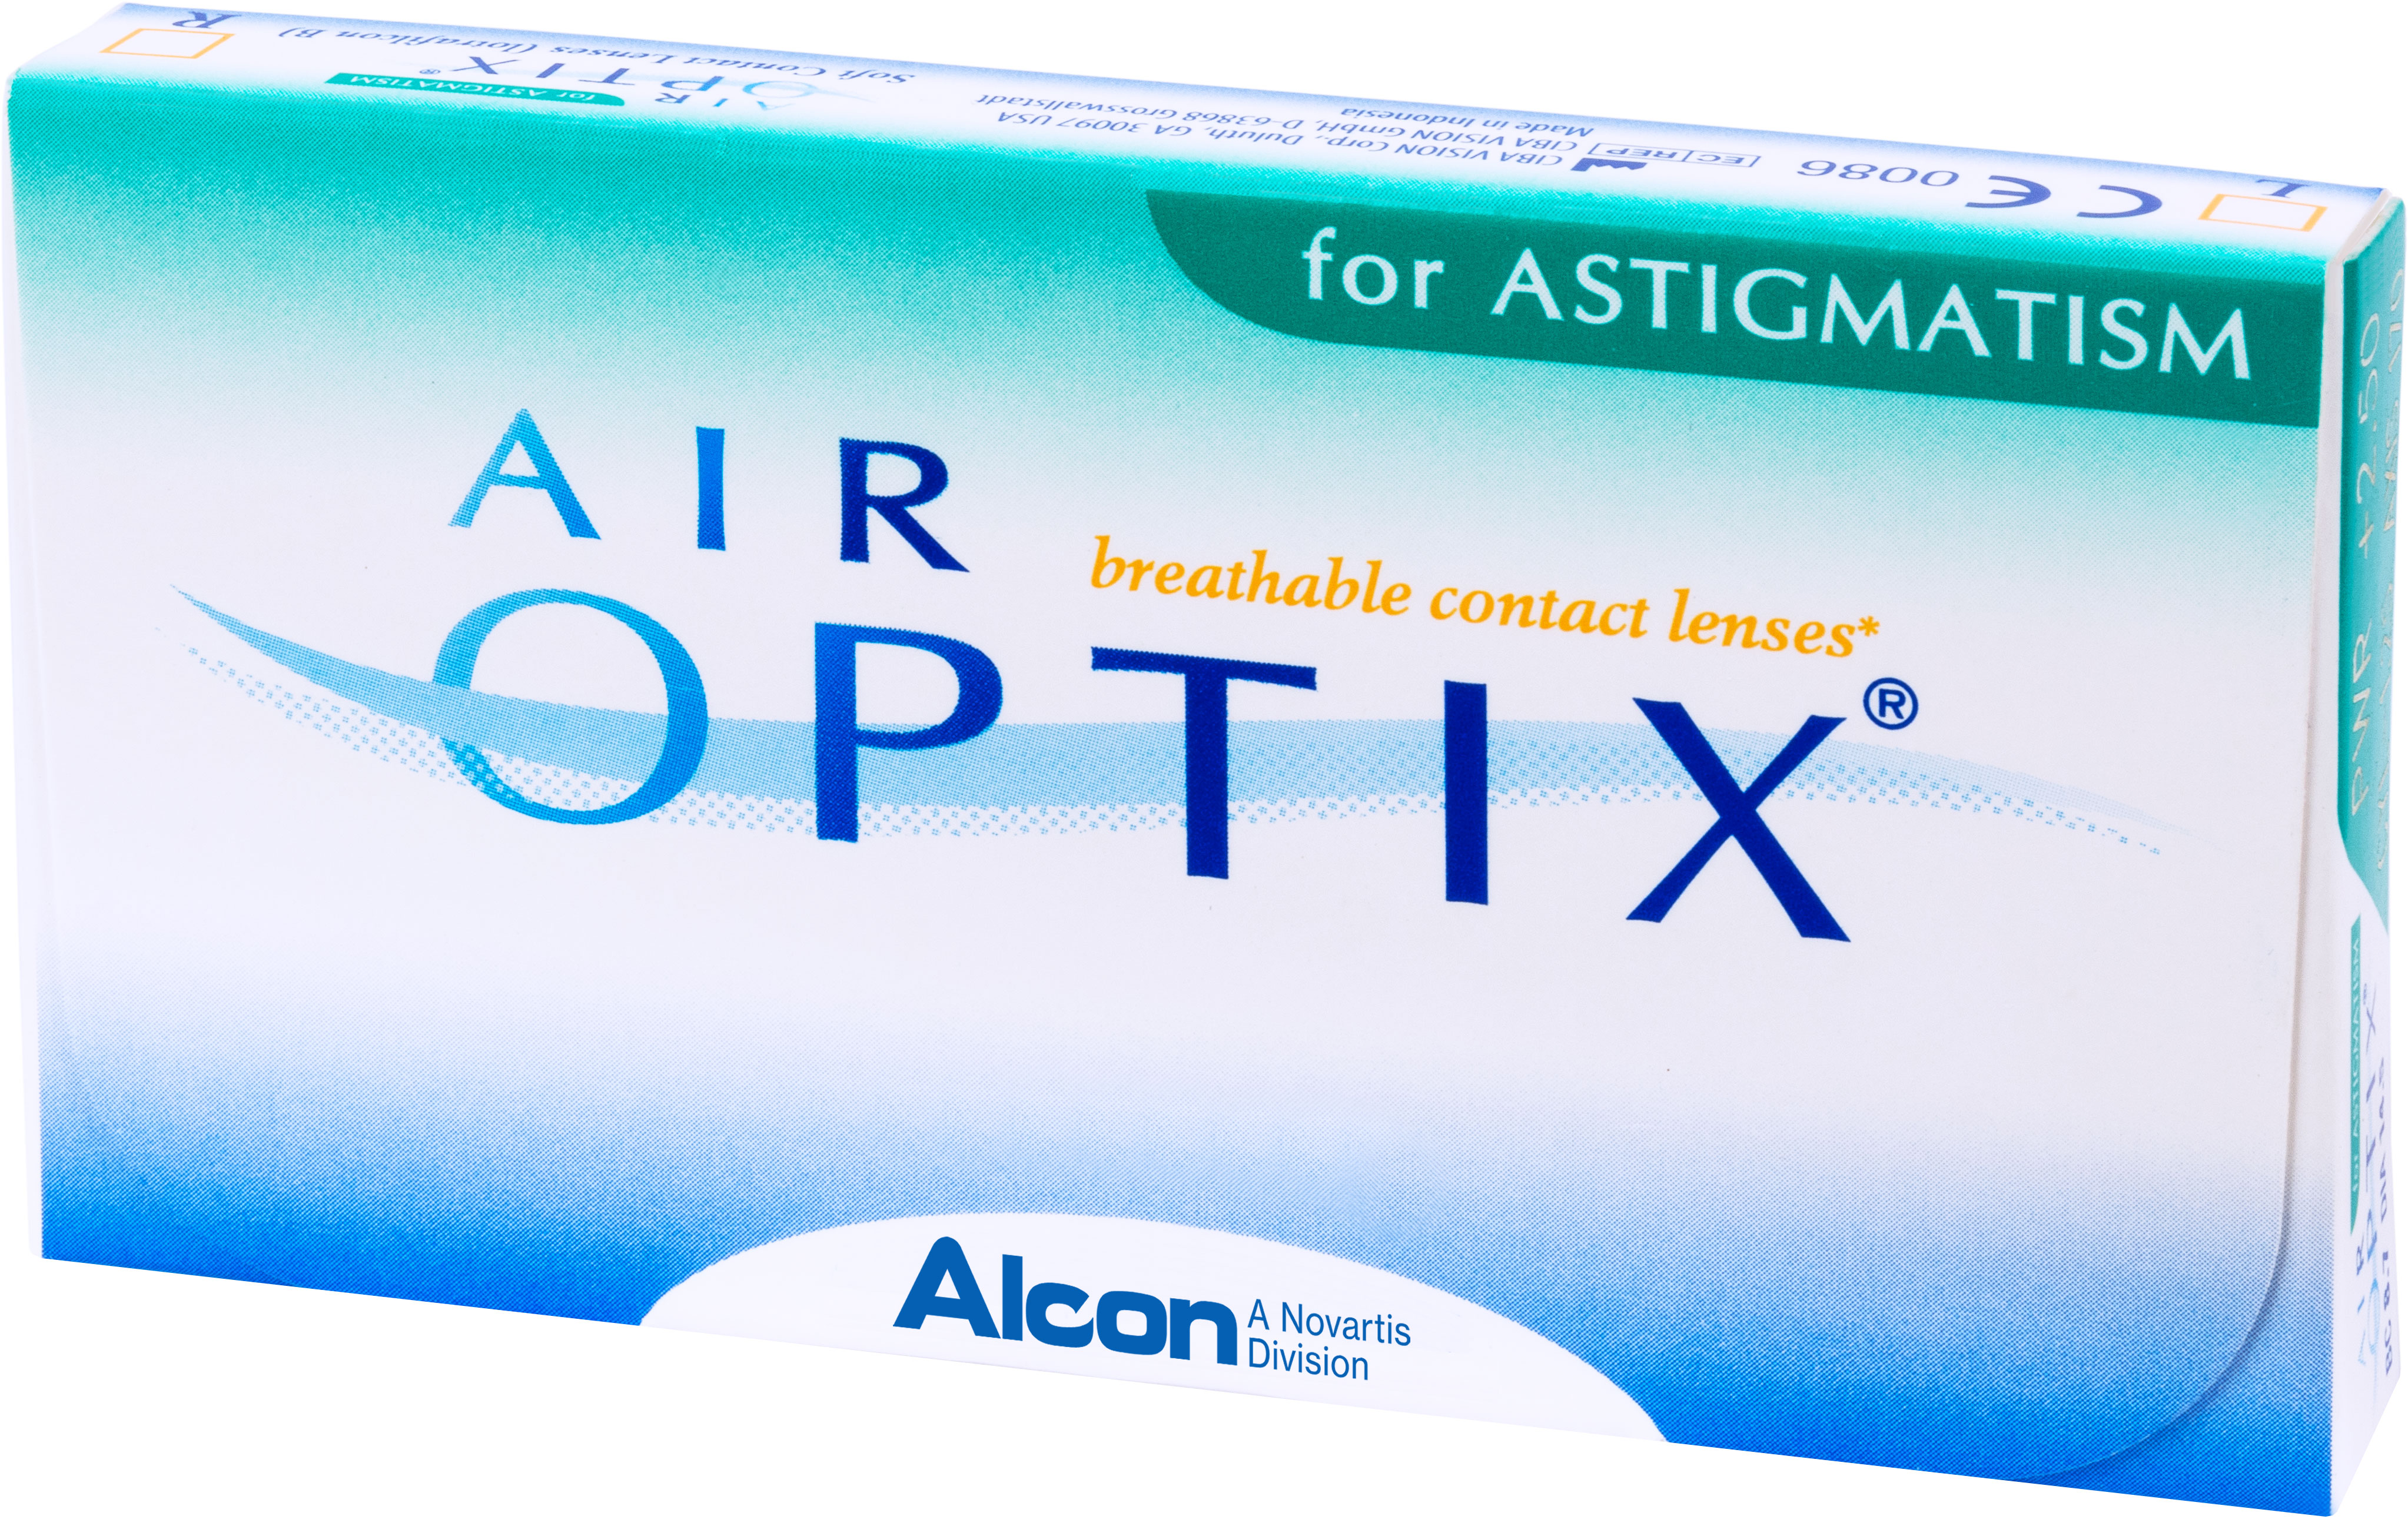 Аlcon контактные линзы Air Optix for Astigmatism 3pk /BC 8.7/DIA14.5/PWR +5.50/CYL -0.75/AXIS 140100019721with Hydraclear